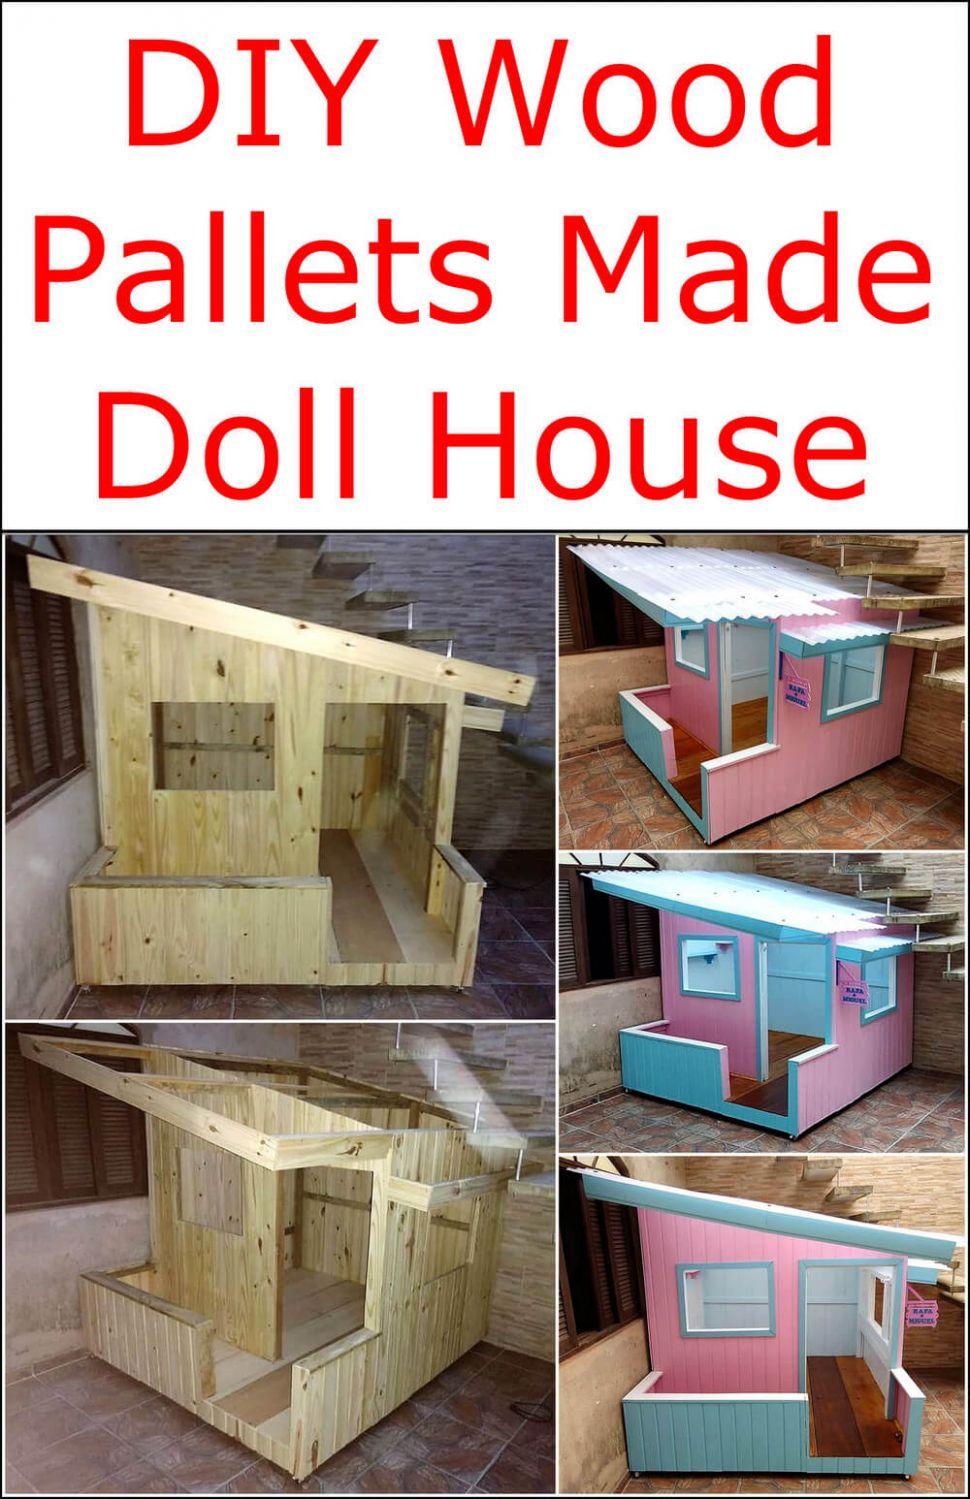 DIY Wood Pallets Made Doll House | Pallet Ideas